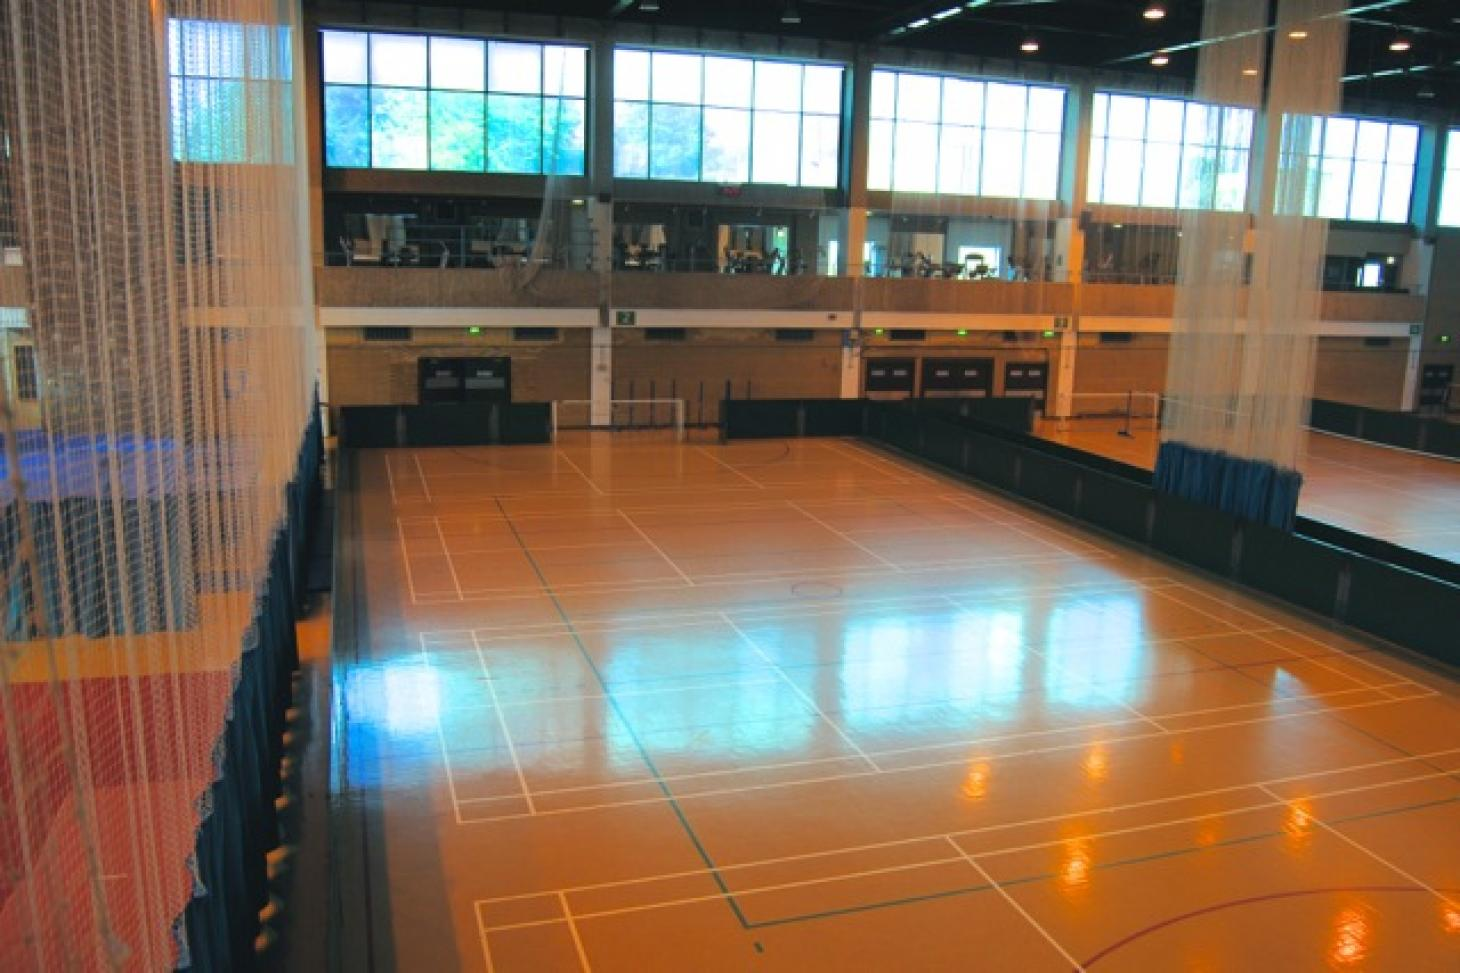 Sobell Leisure Centre 5 a side | Indoor football pitch